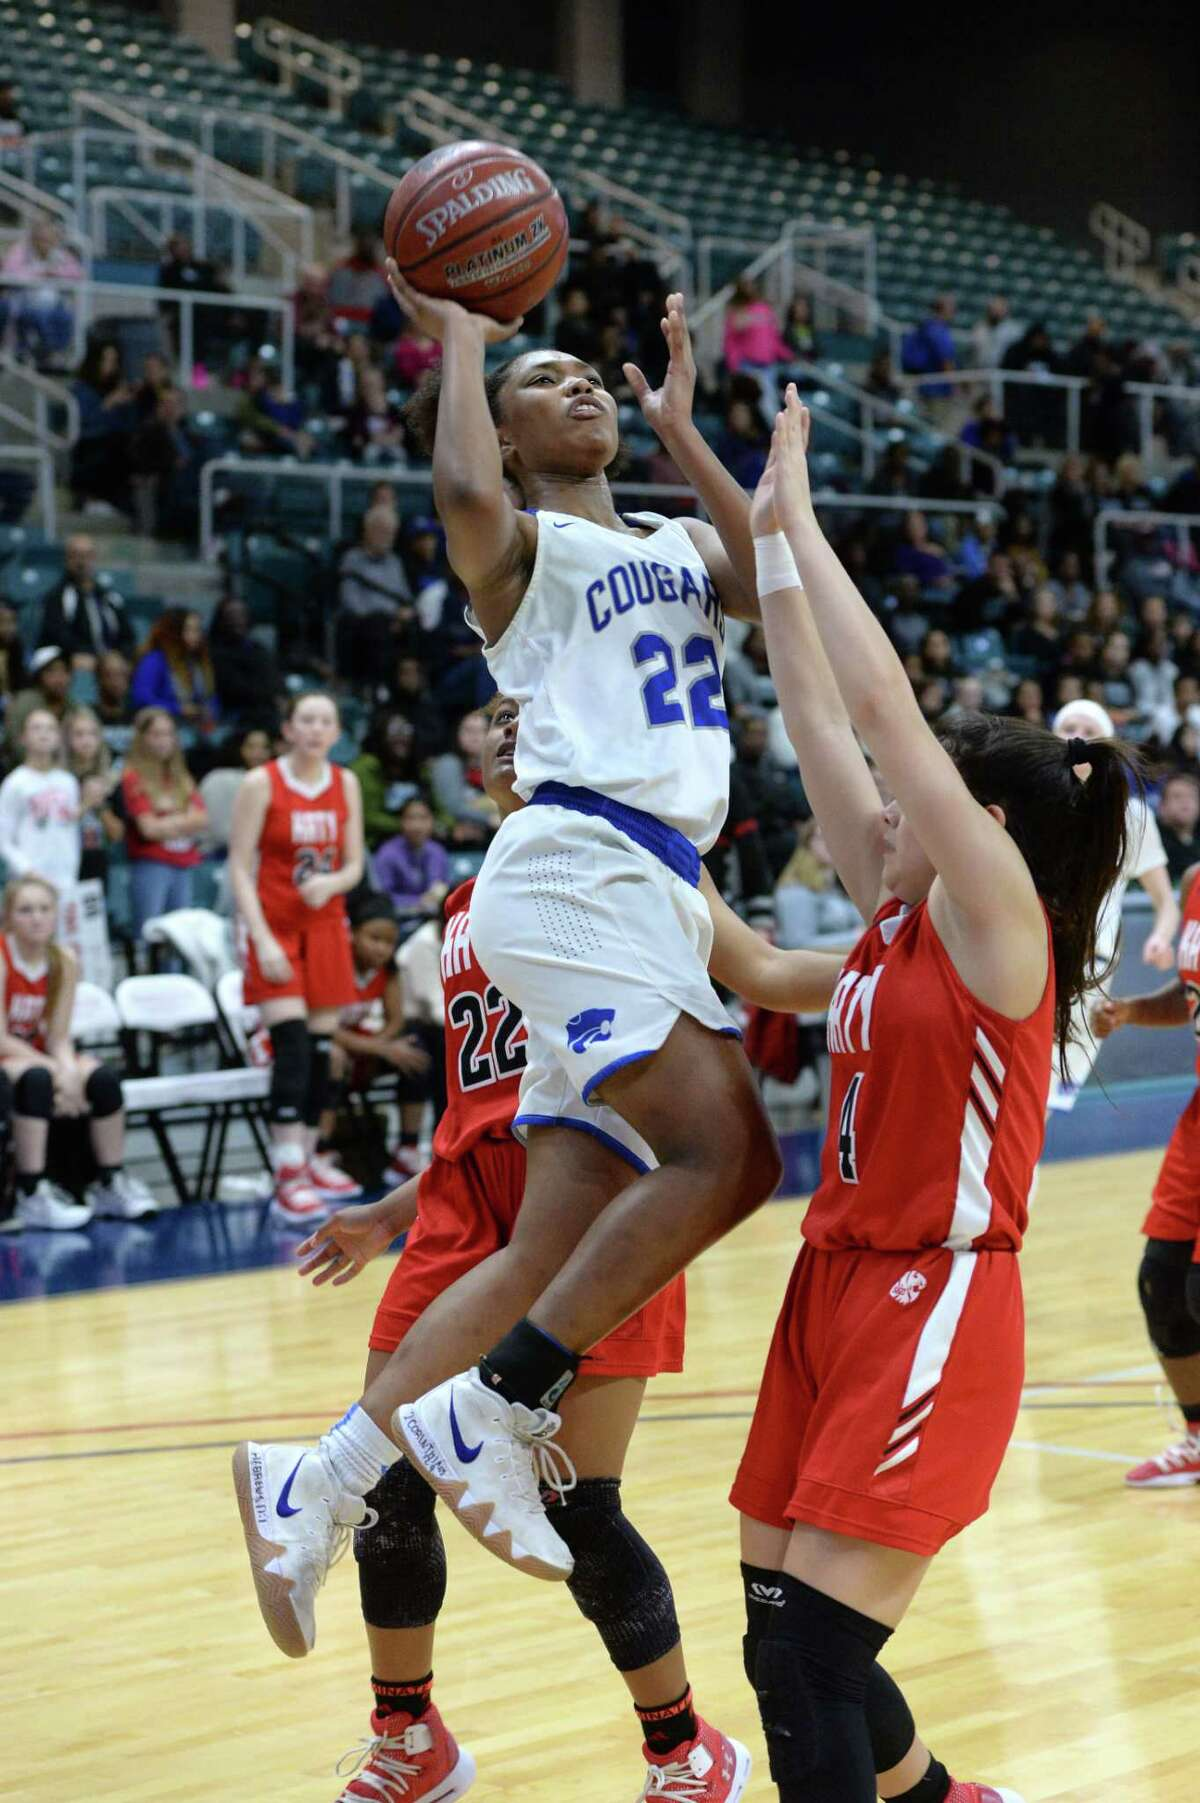 Kyndall Hunter (22) of Cy-Creek drives to the basket during the first half of a Class 6A, Region III quarterfinal basketball playoff game between the Katy Tigers and the Cy-Creek Cougars on Tuesday, February 19, 2019 at the Merrell Center, Katy, TX.